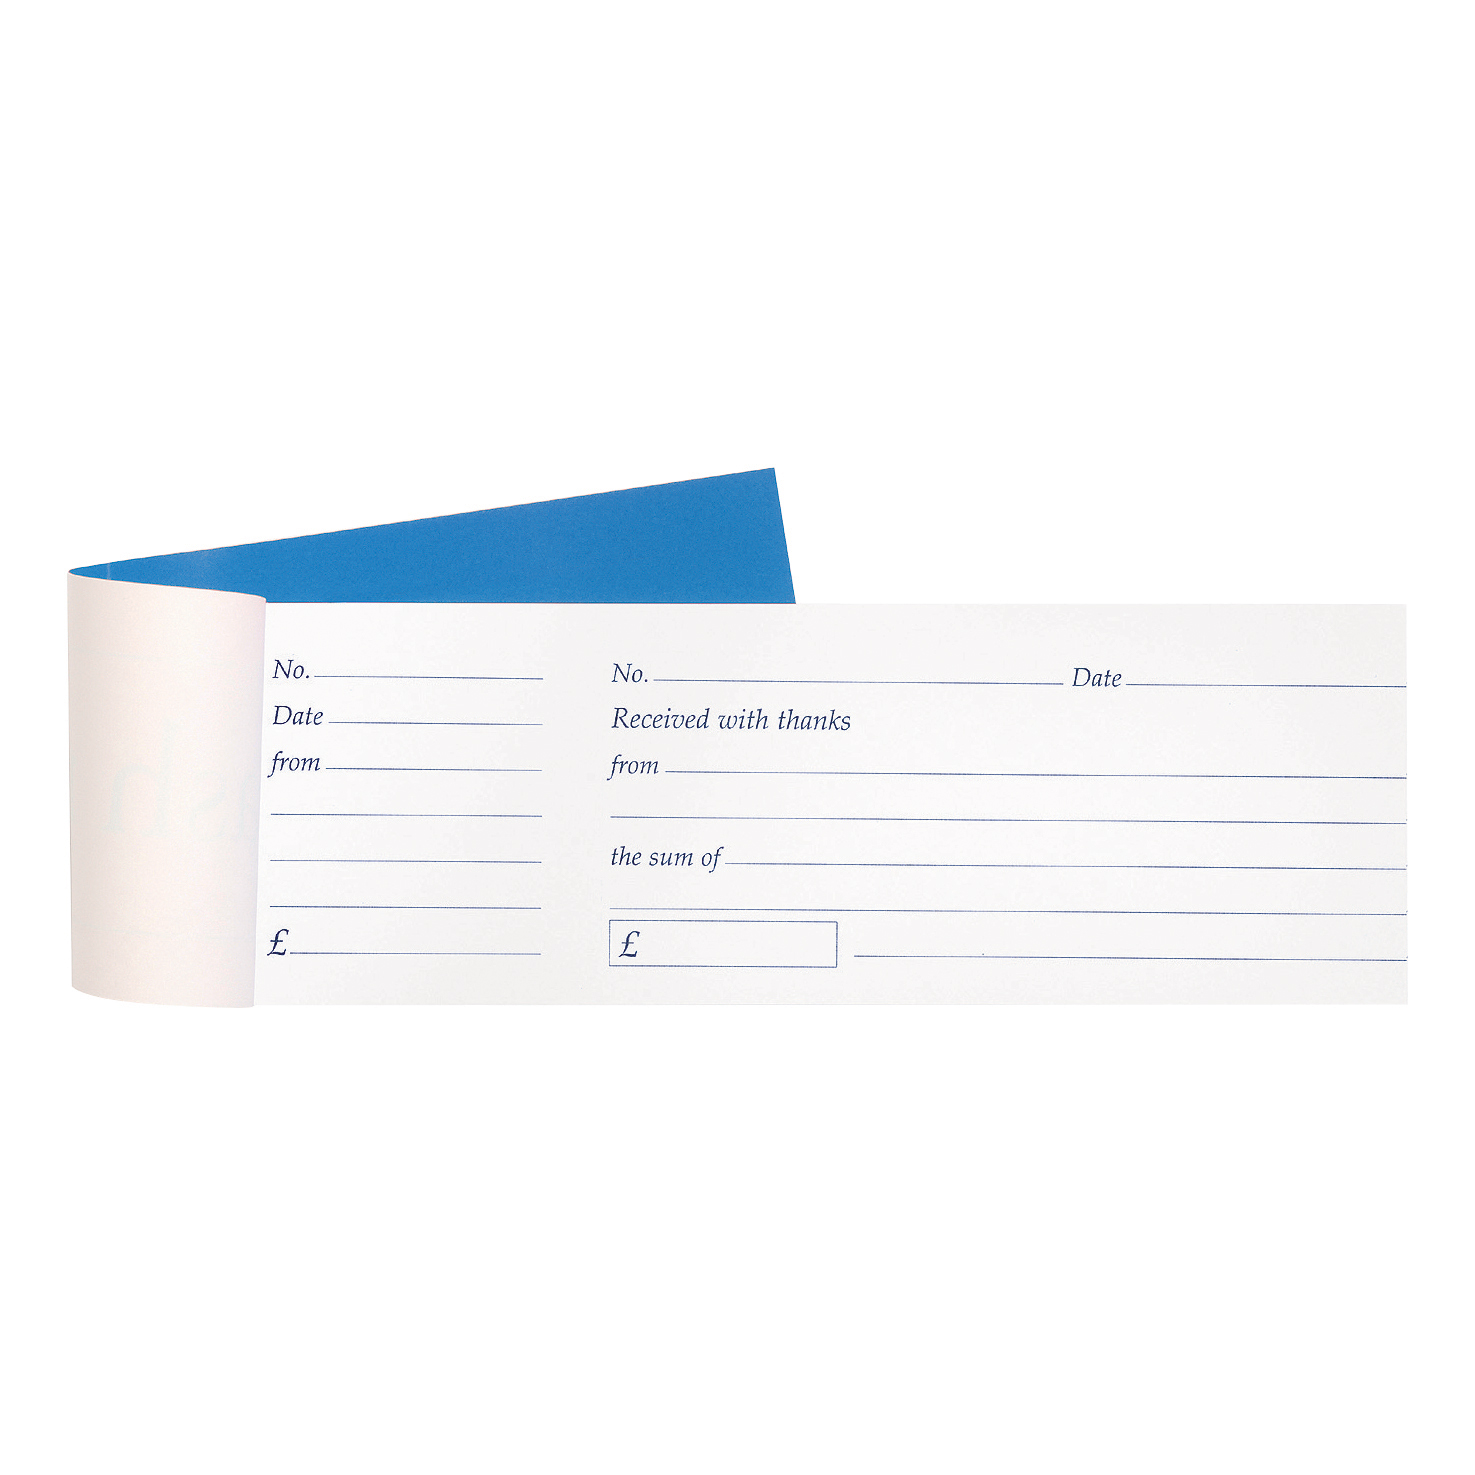 Image for Cash Receipt Book Tear Off 80 Receipts 79x202mm